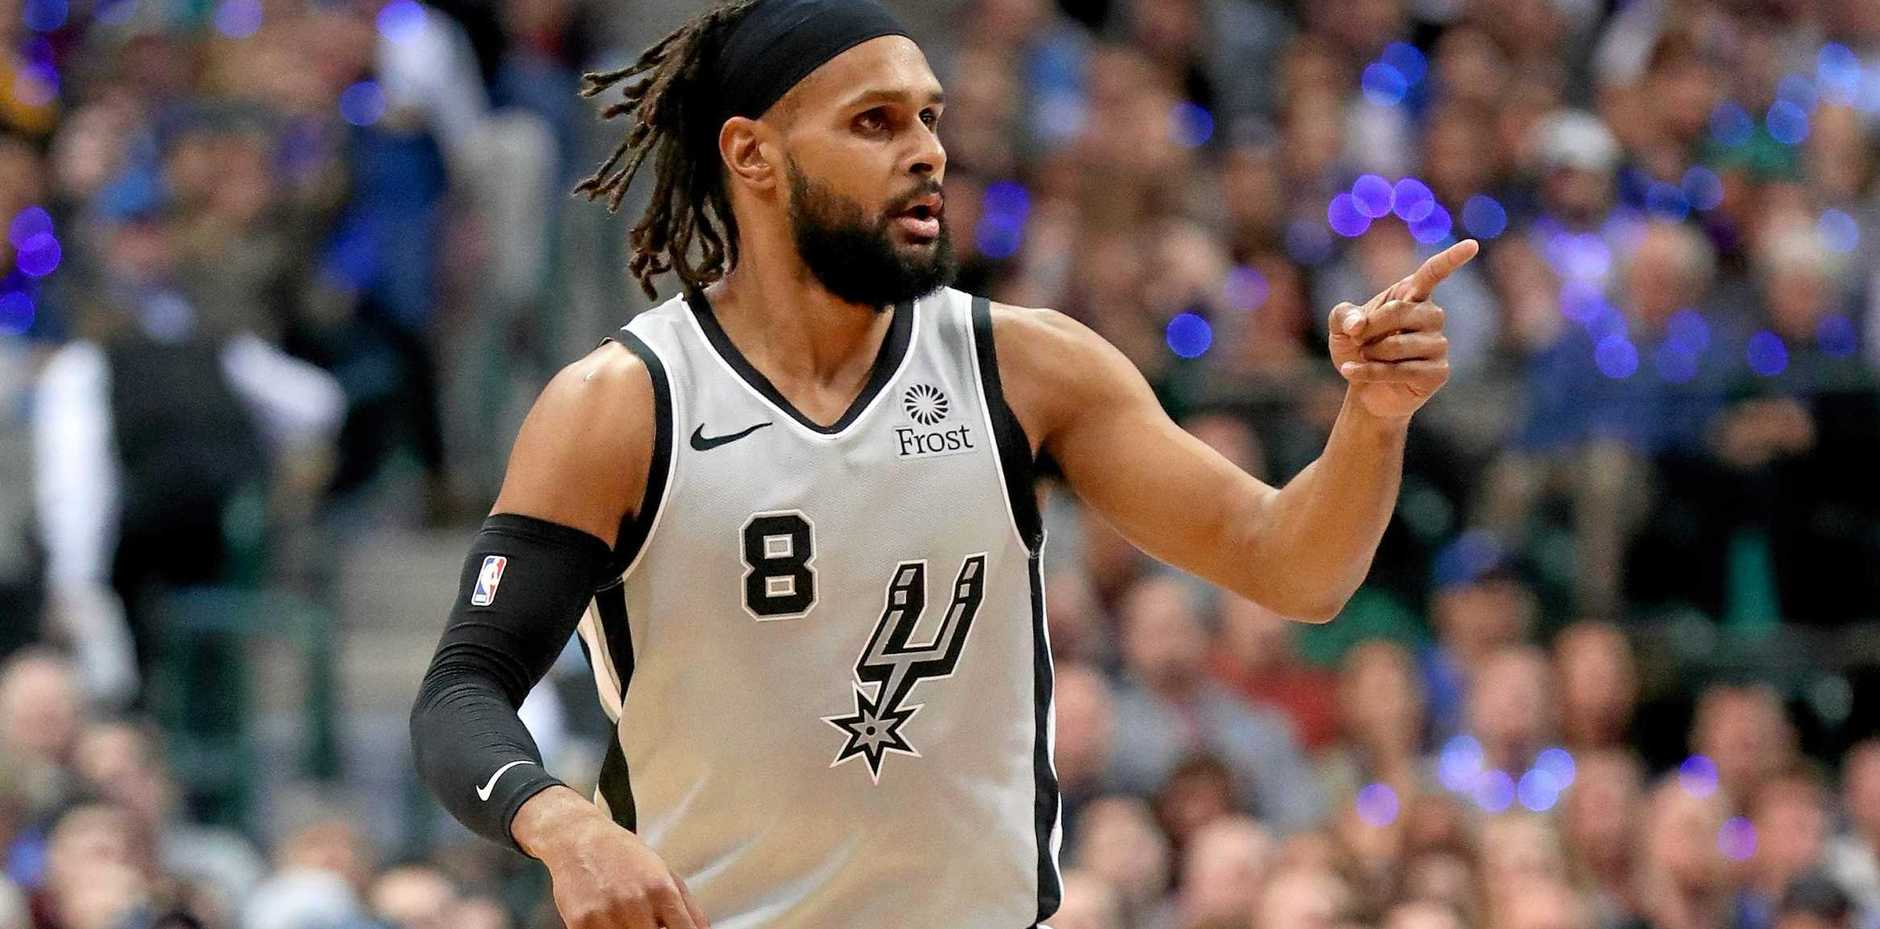 Patty Mills of the San Antonio Spurs reacts after scoring against the Dallas Mavericks in the second half at American Airlines Center on January 16, 2019 in Dallas, Texas.